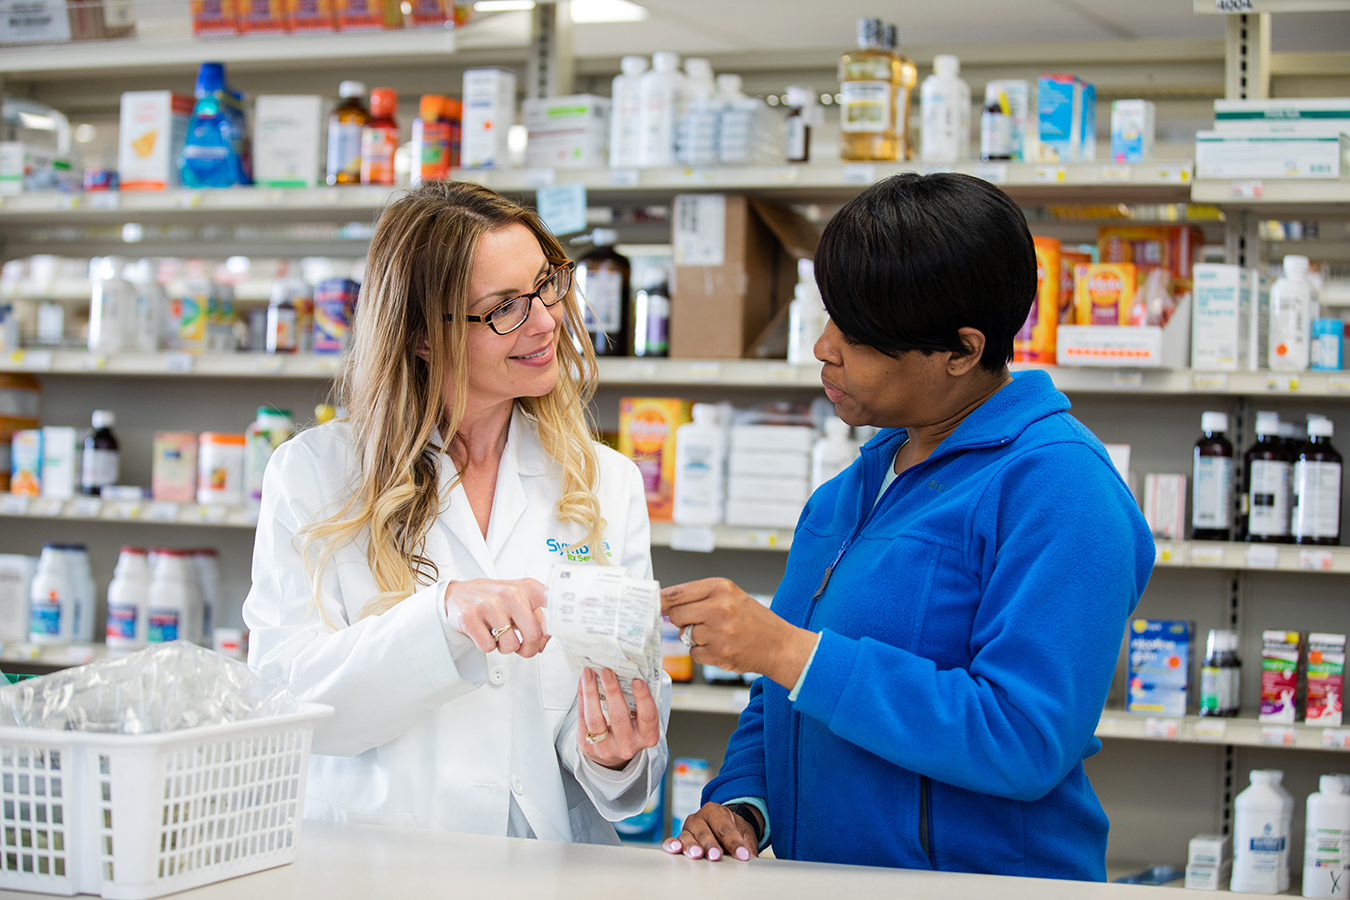 Symbria pharmacist reviews medication with patient